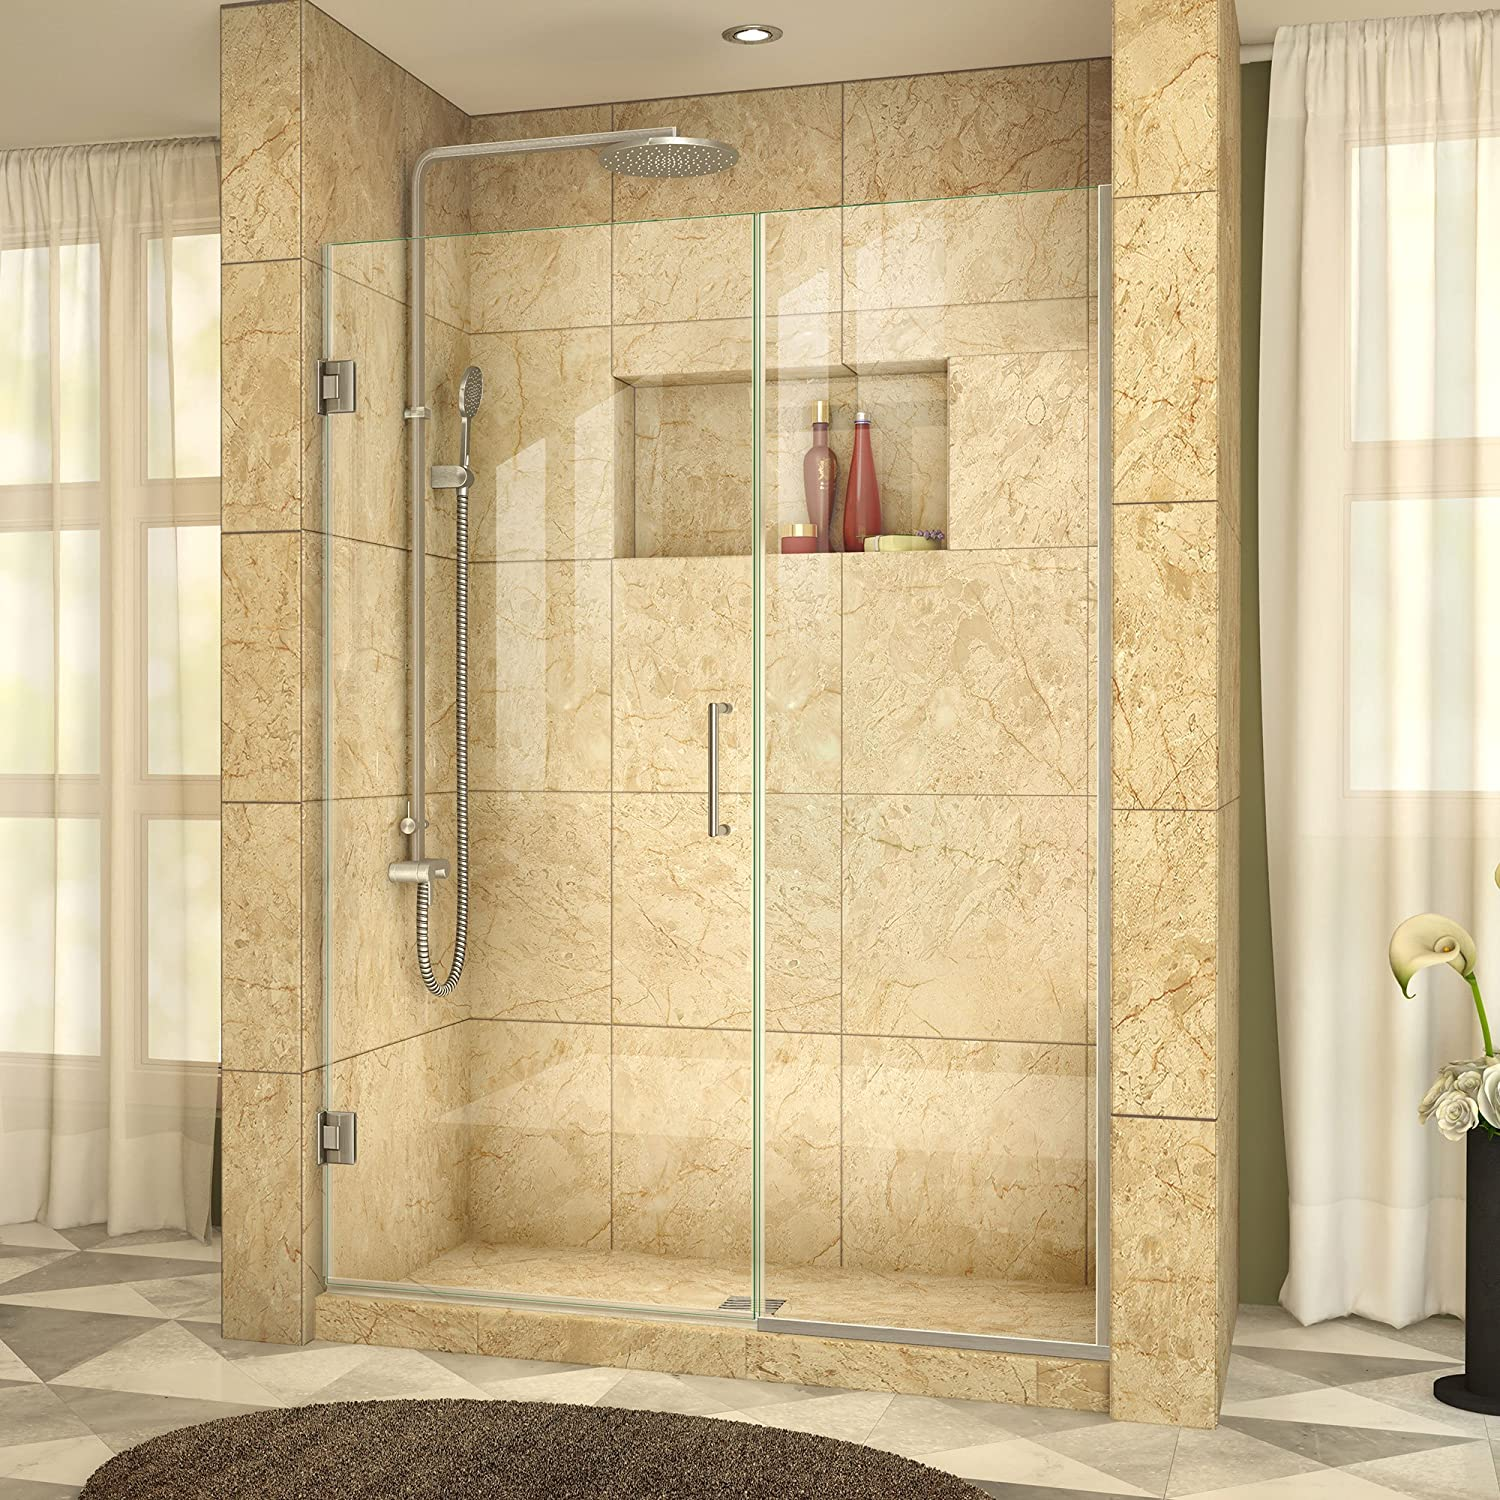 Dreamline Unidoor Plus 47 12 48 In Width Frameless Hinged Shower